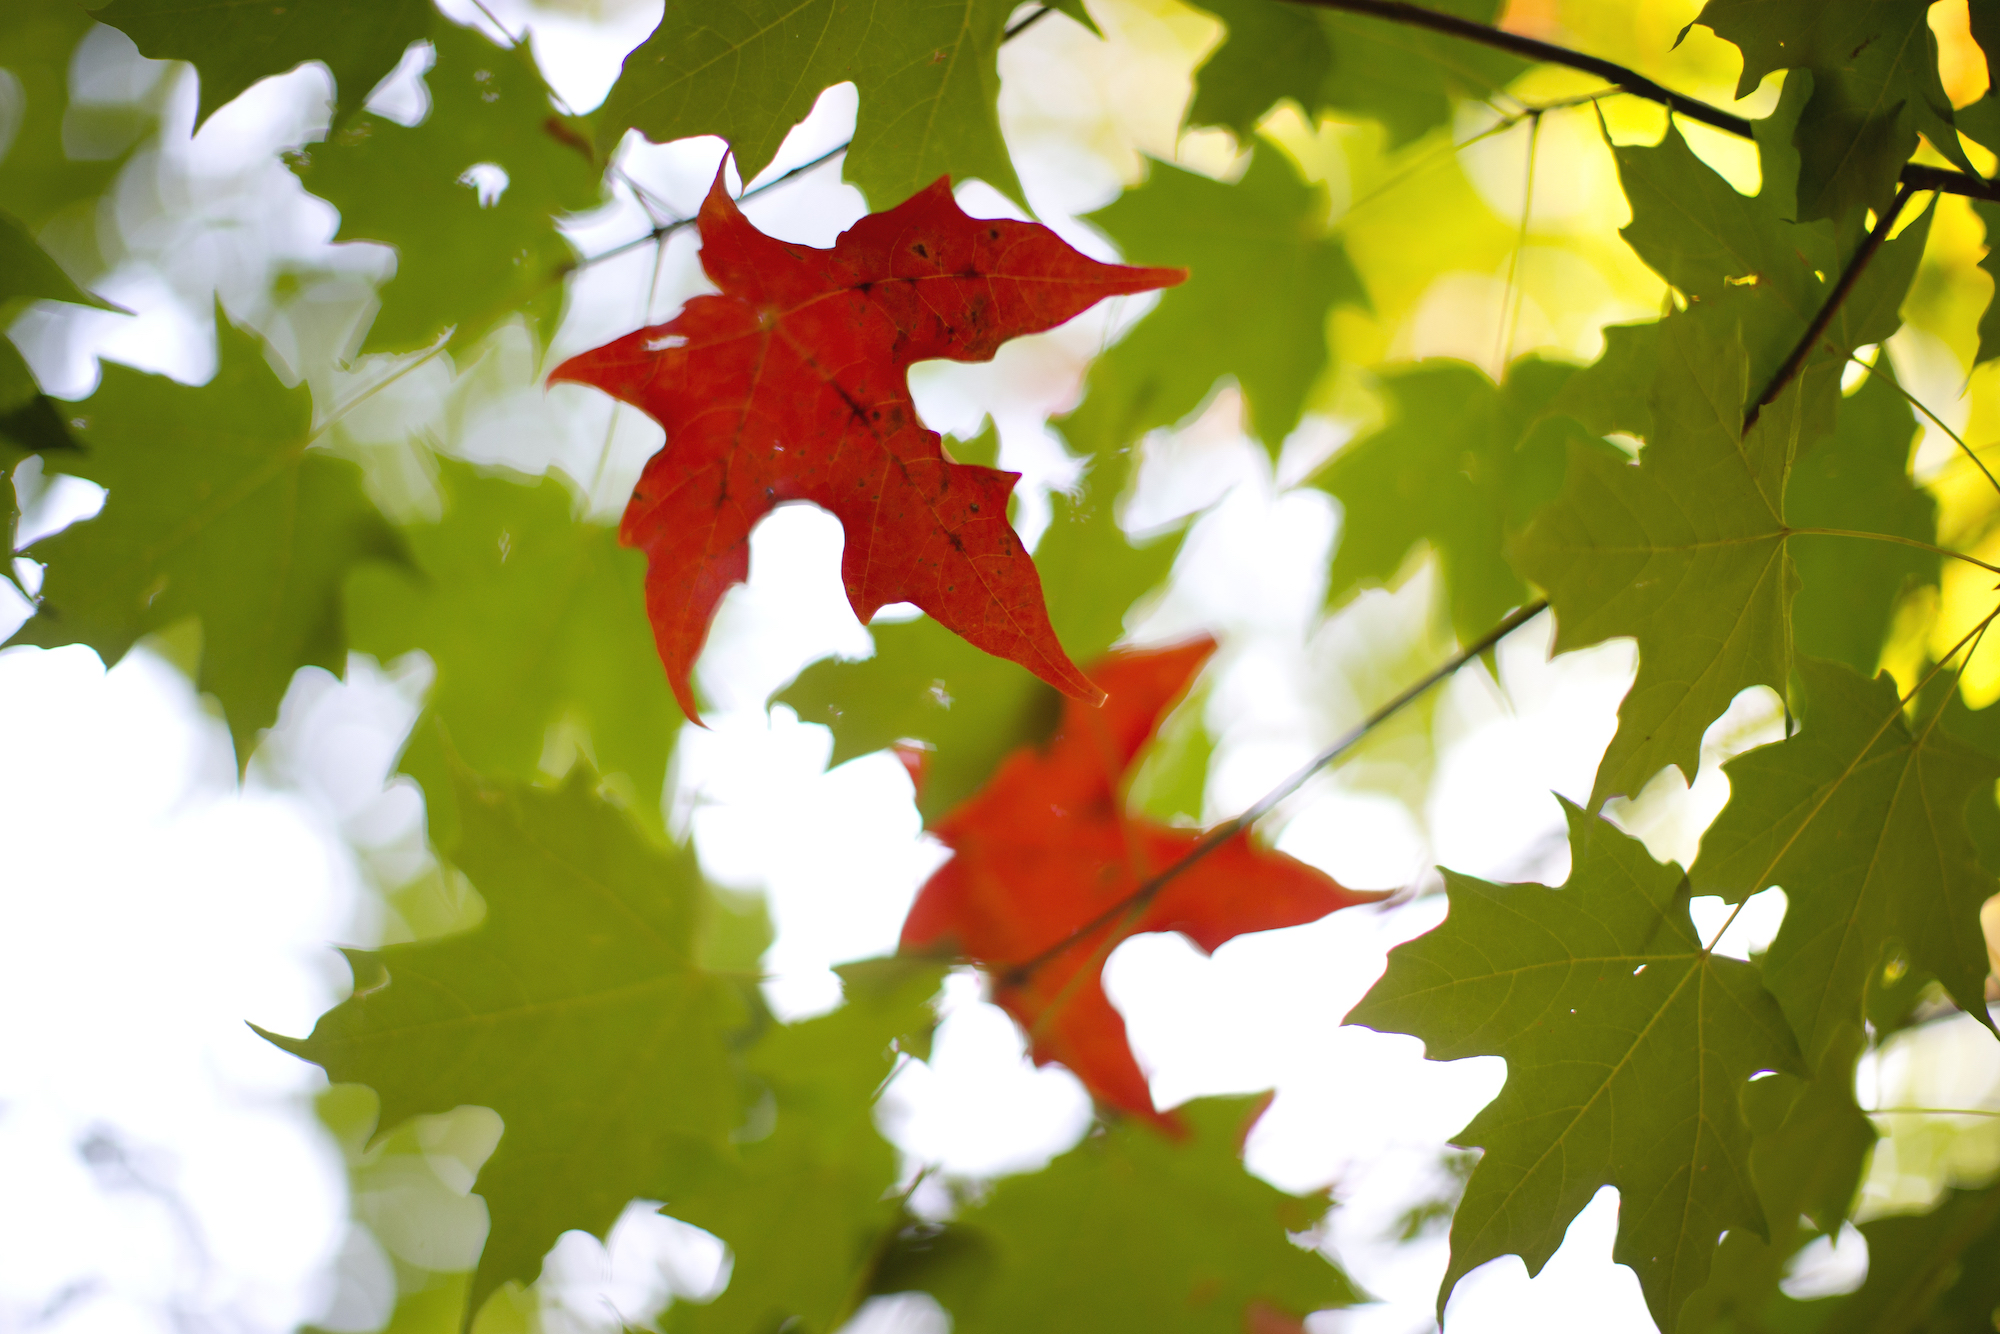 Get ready for short days, long nights: Monday's autumnal equinox marks beginning of fall